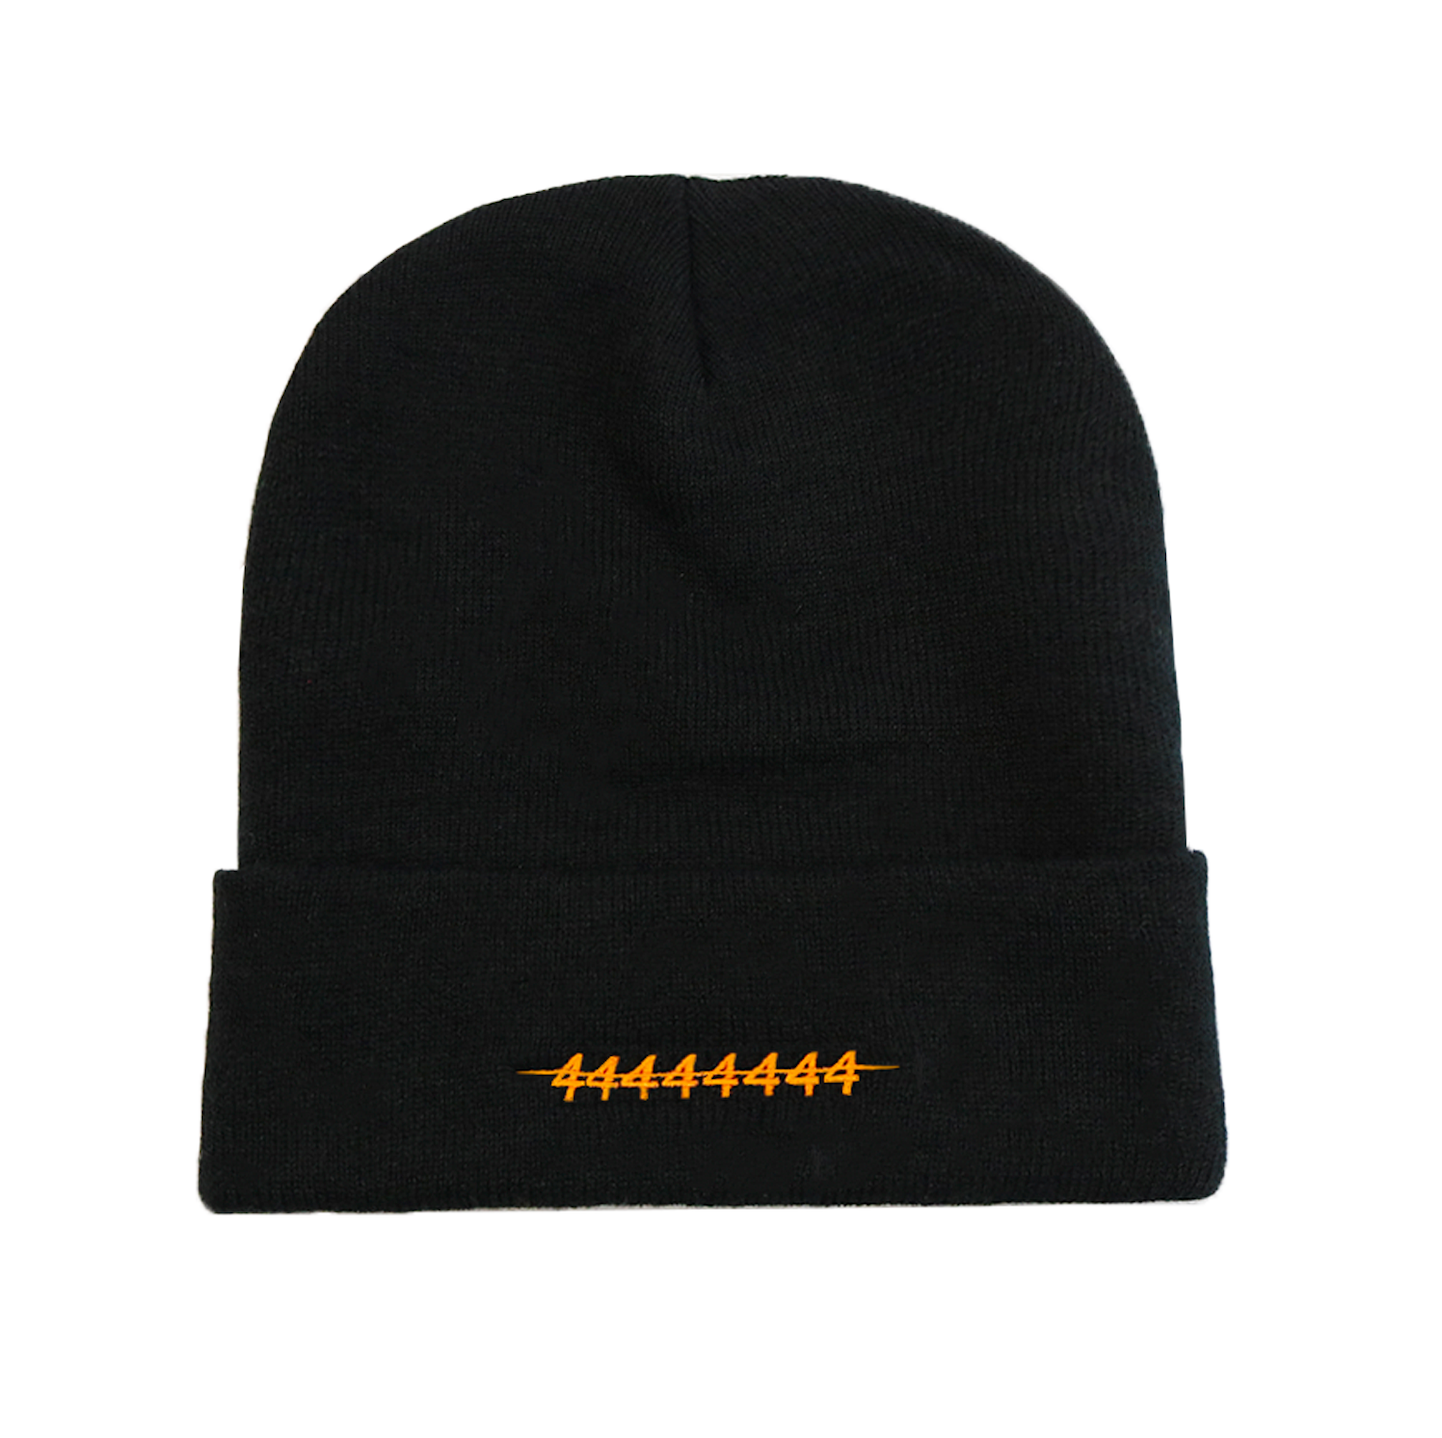 LOGO BEANIE ORANGE/BLACK